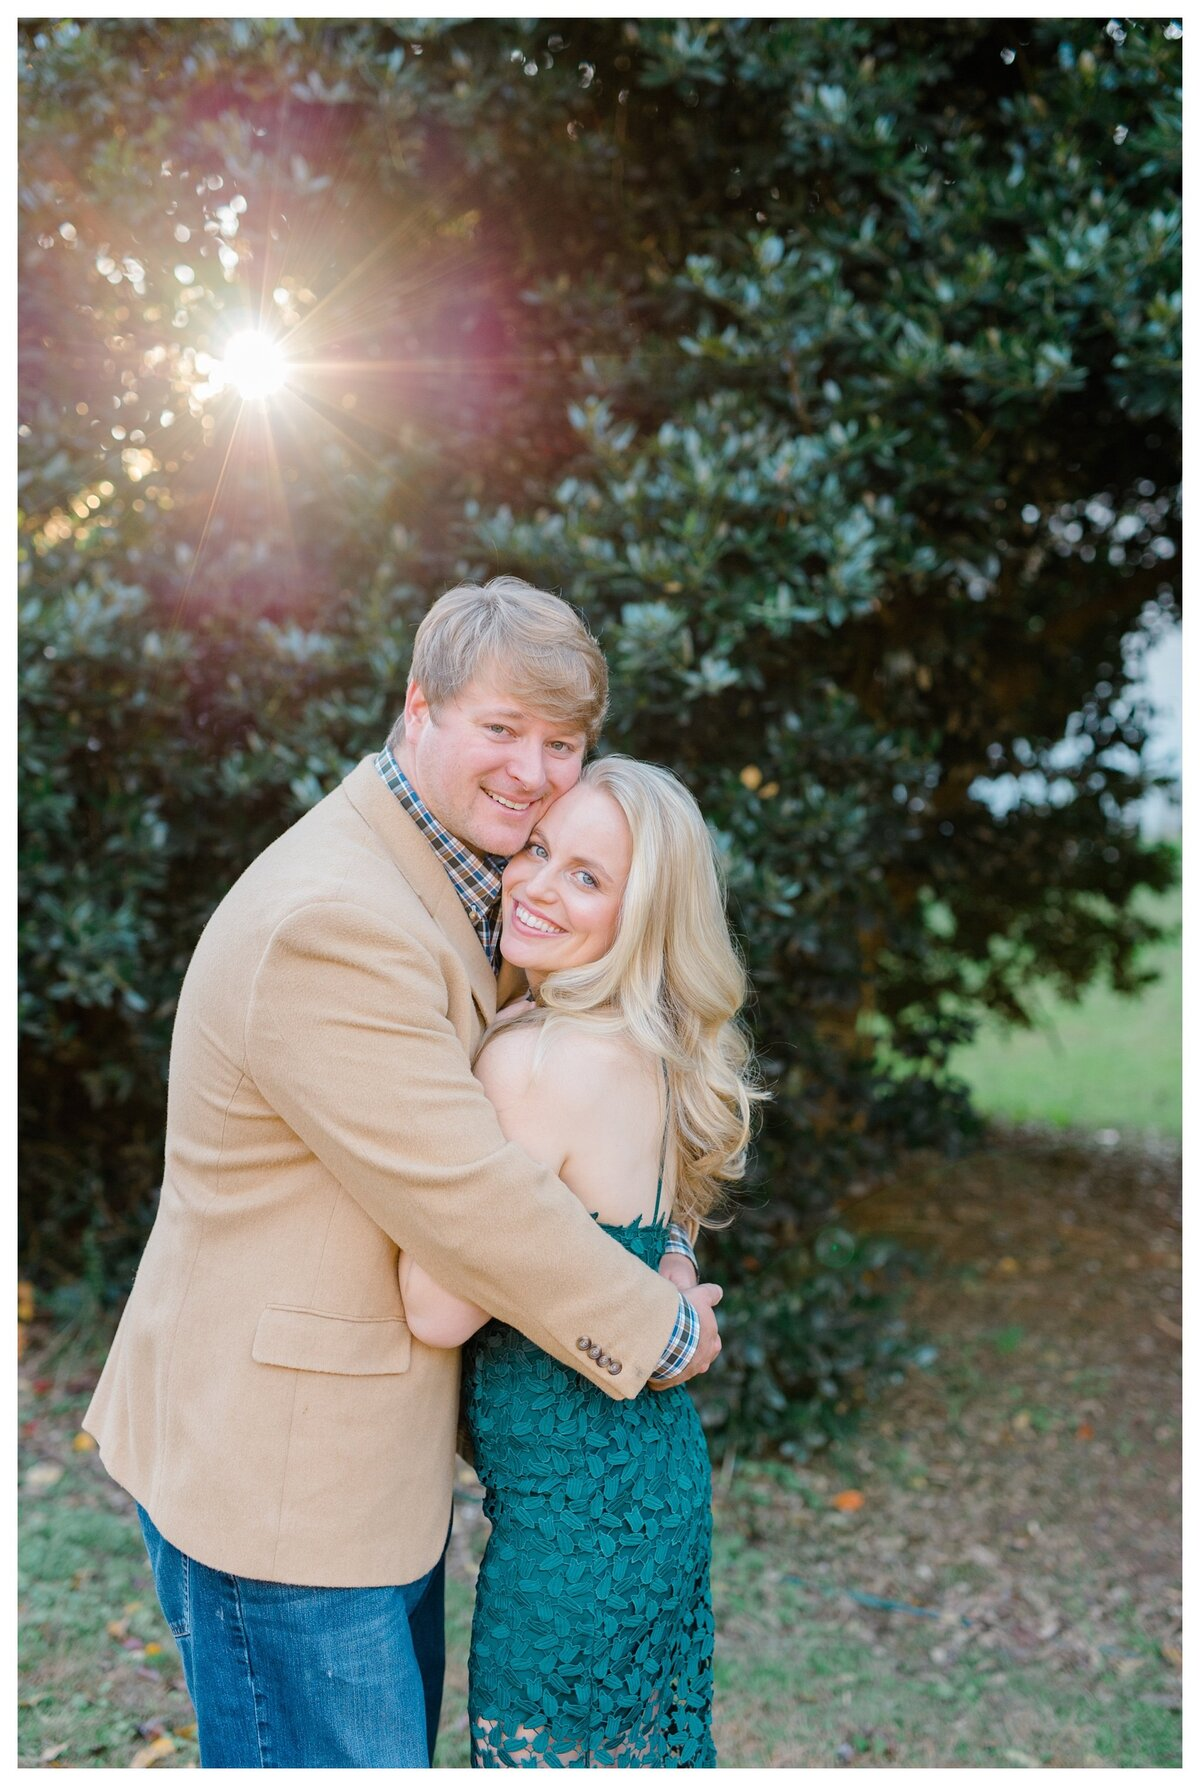 canady-engagements-atlanta-wedding-photographer-26